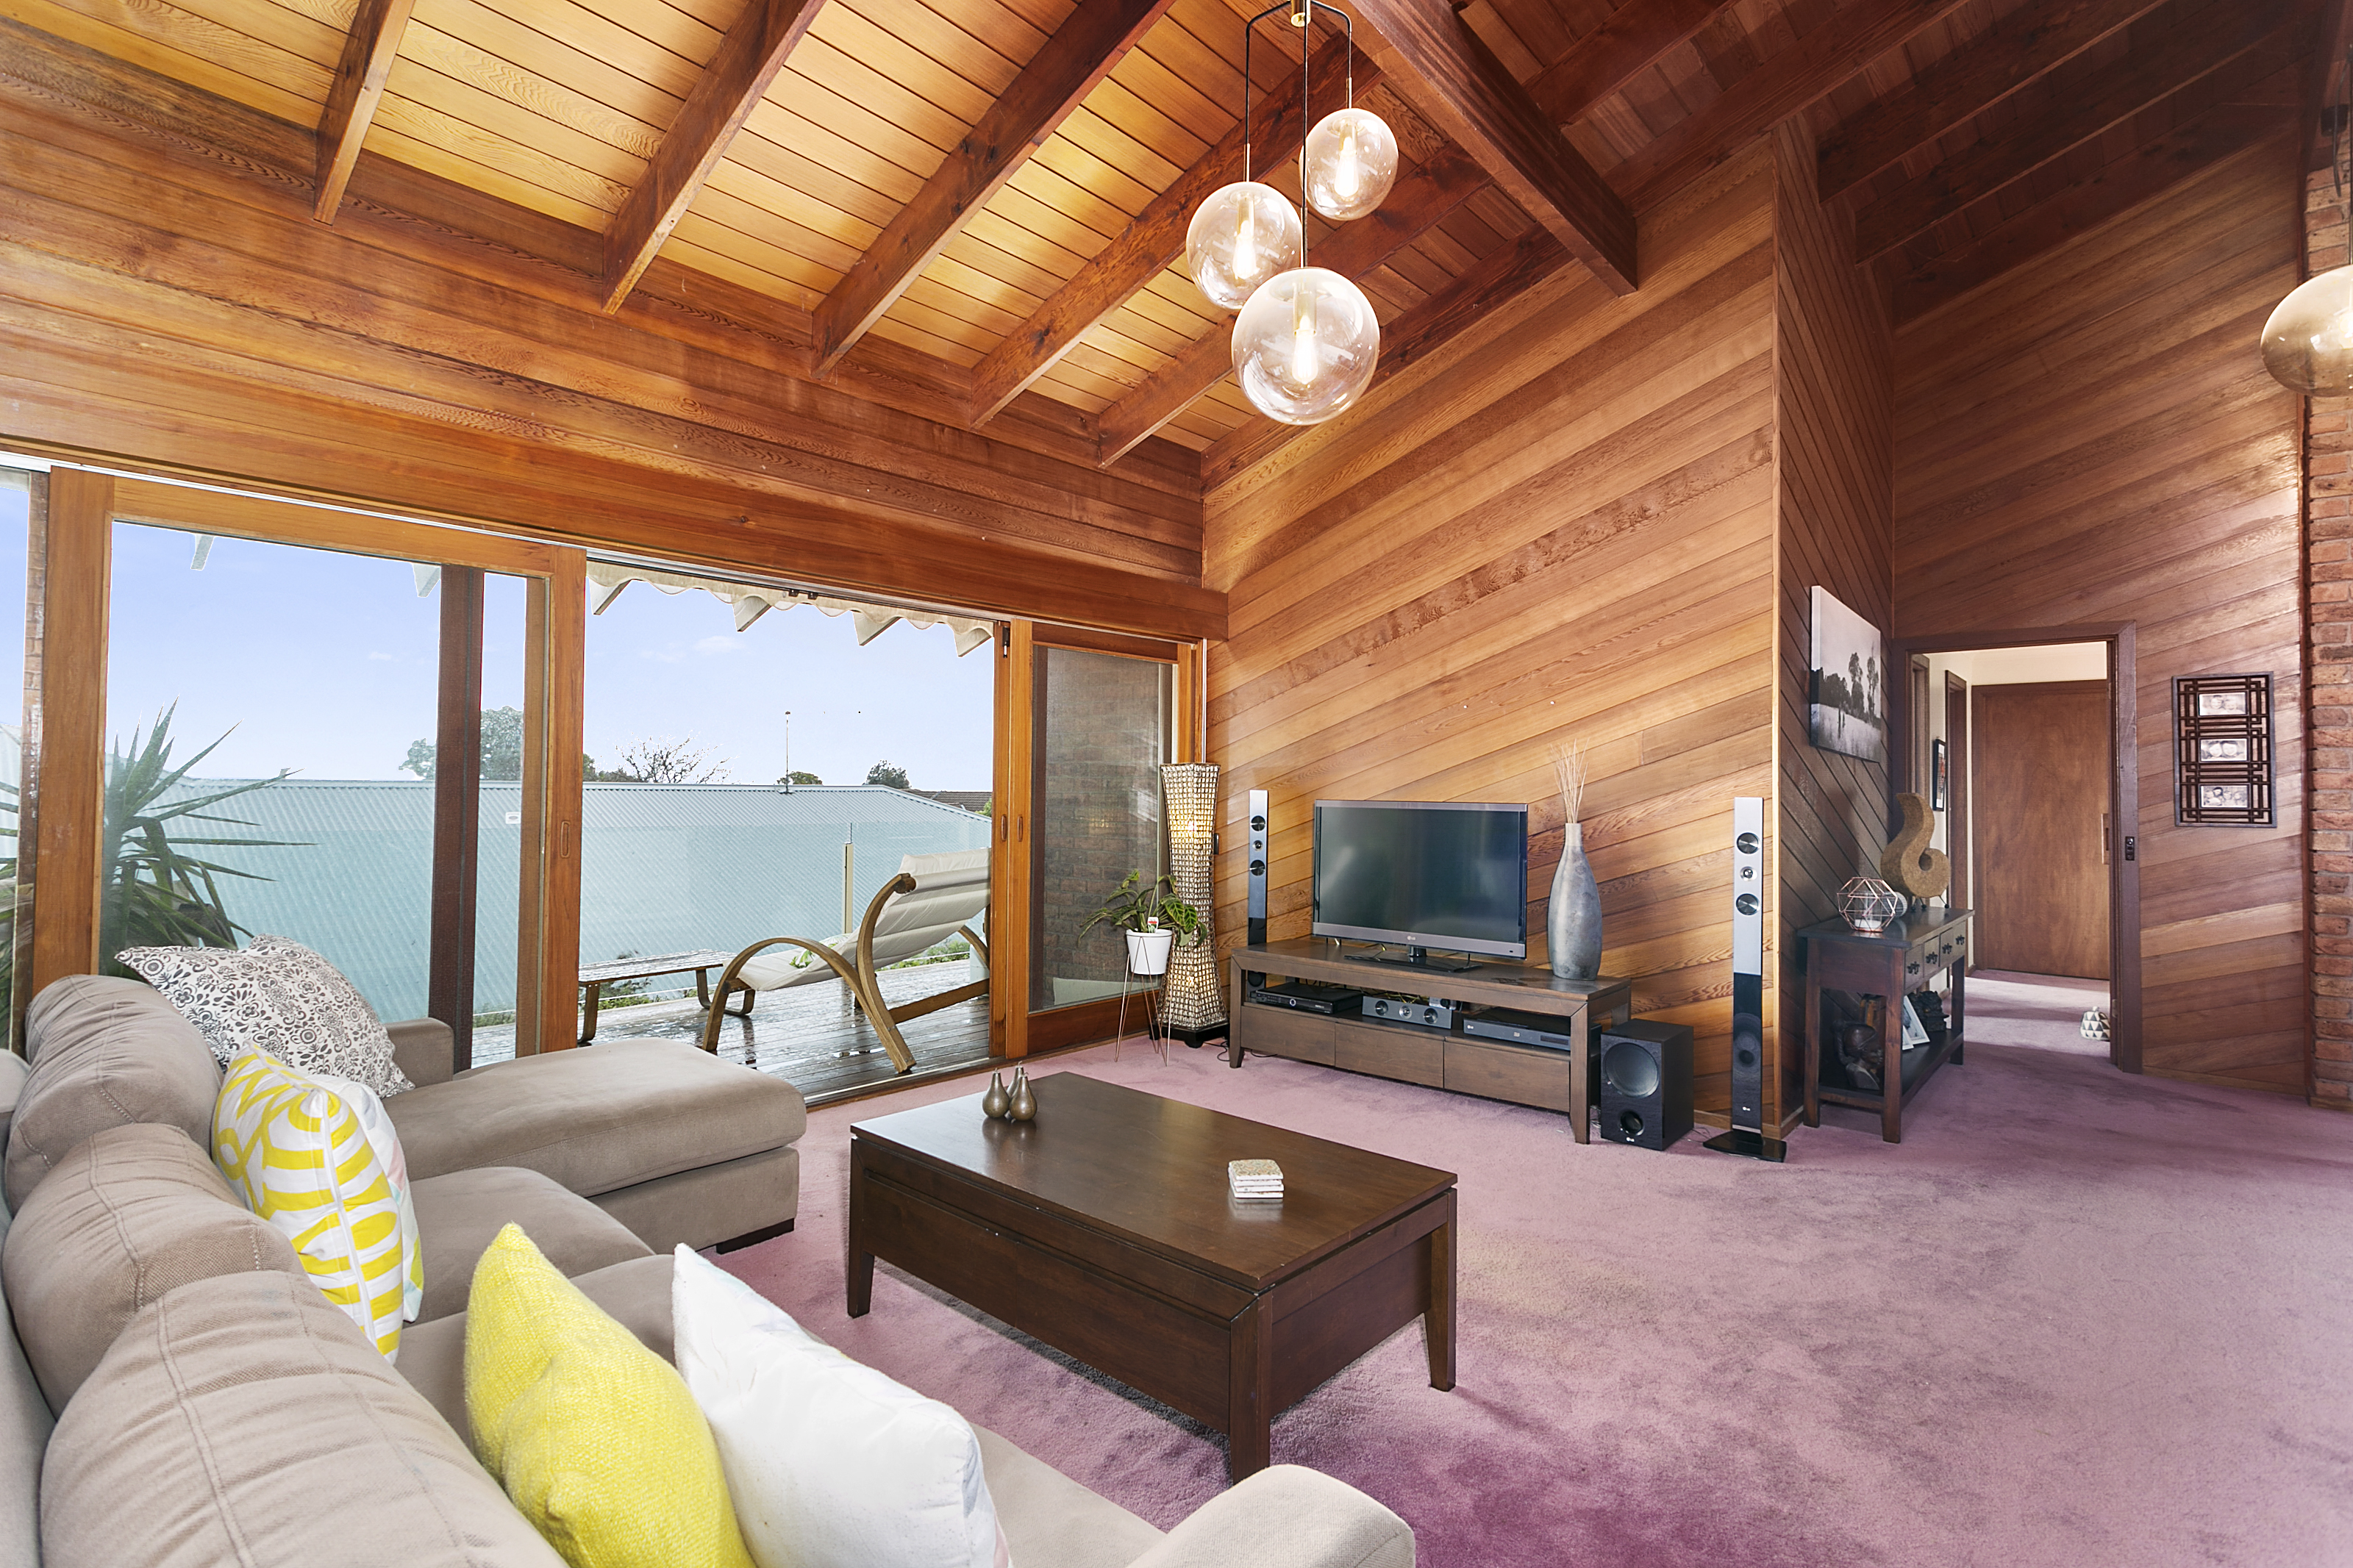 Lounge room opening onto deck